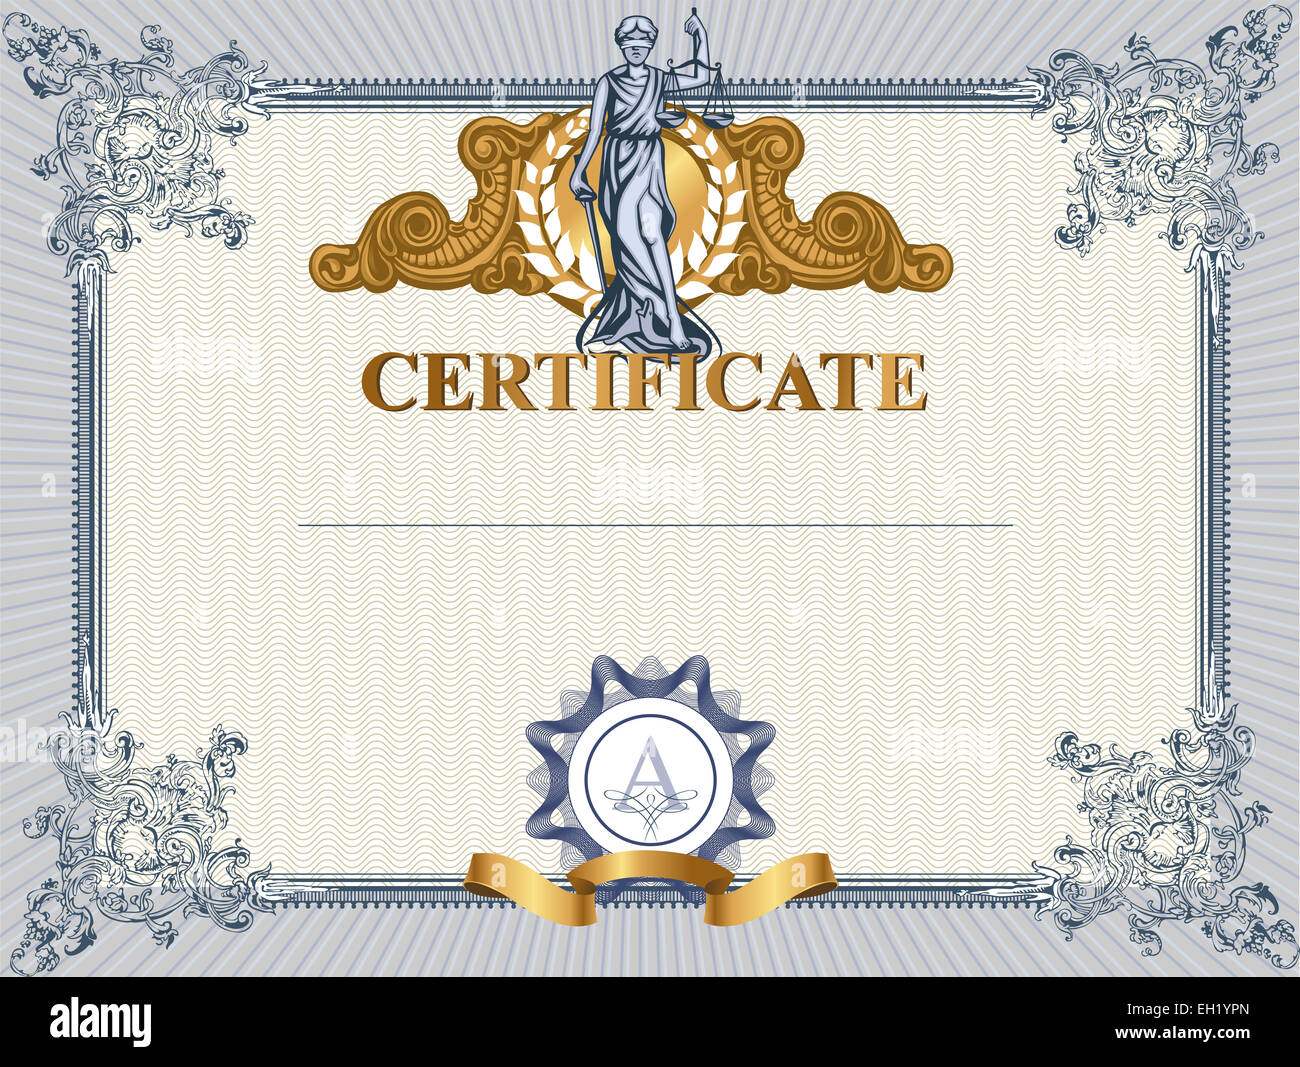 Certificate Border Certificate Template Vector Stock Photos ...